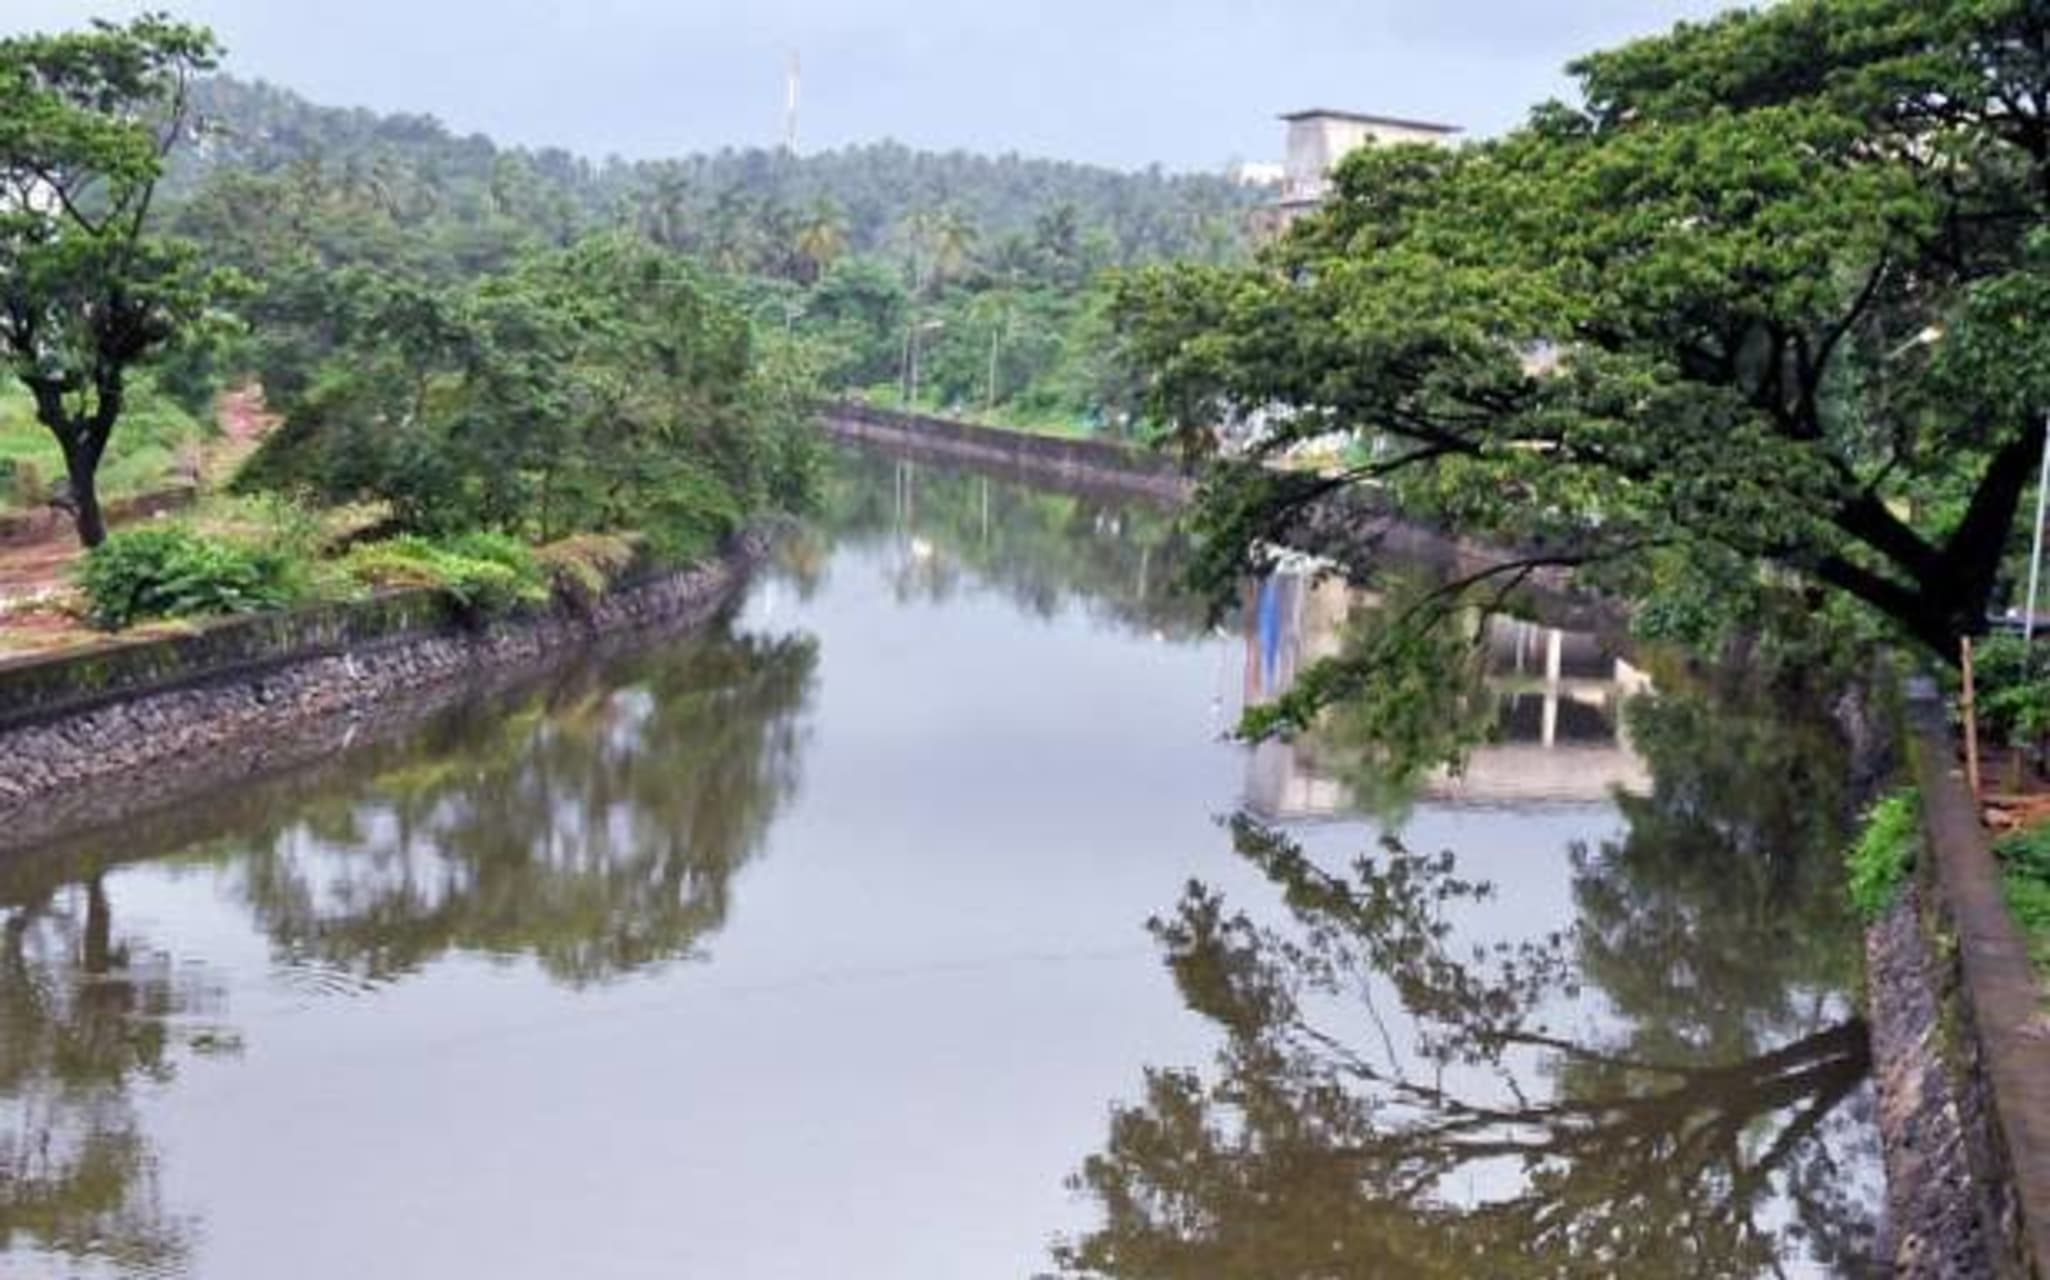 Kerala - Let us Have a Walk with the Nature ; Canoly Canal and Surrounding Area